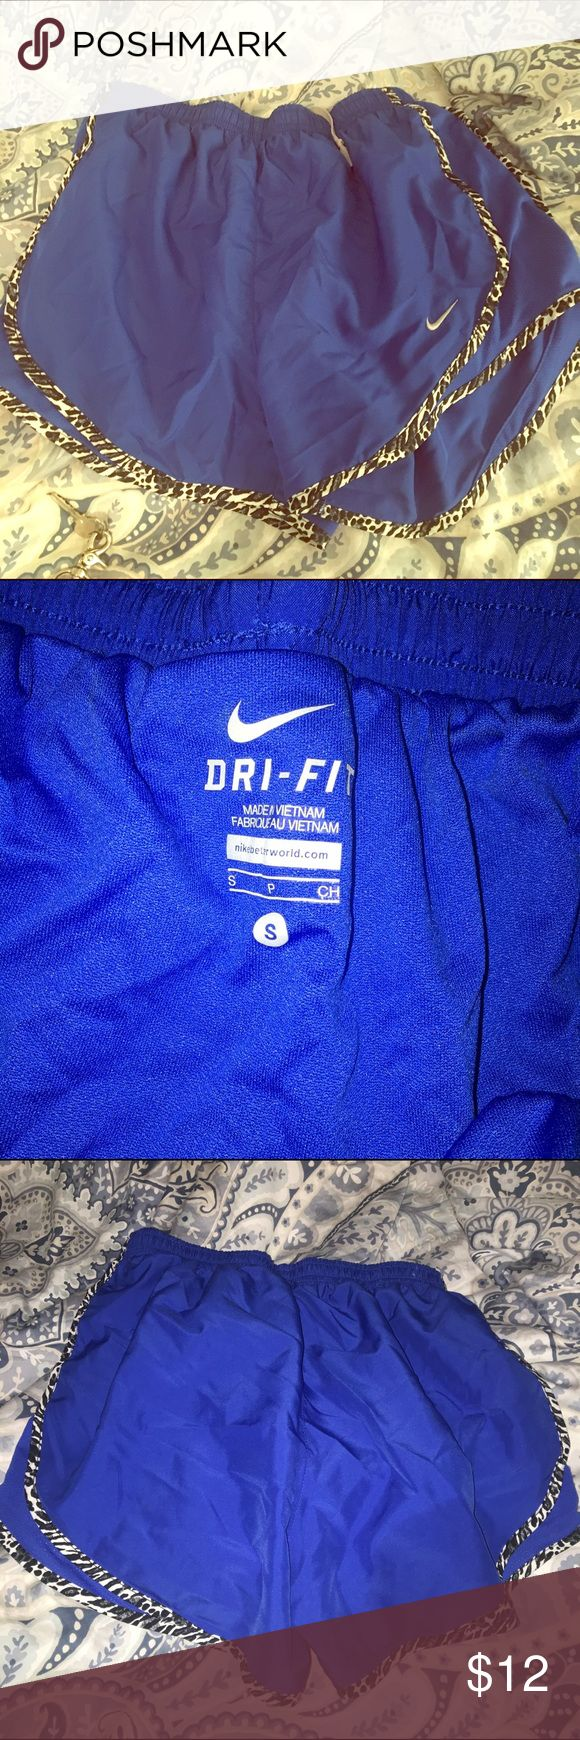 Women's Nike Tempo shorts size Small, Royal Blue Women's Nike Tempo shorts size Small, Royal Blue, worn once! Perfect condition Nike Shorts